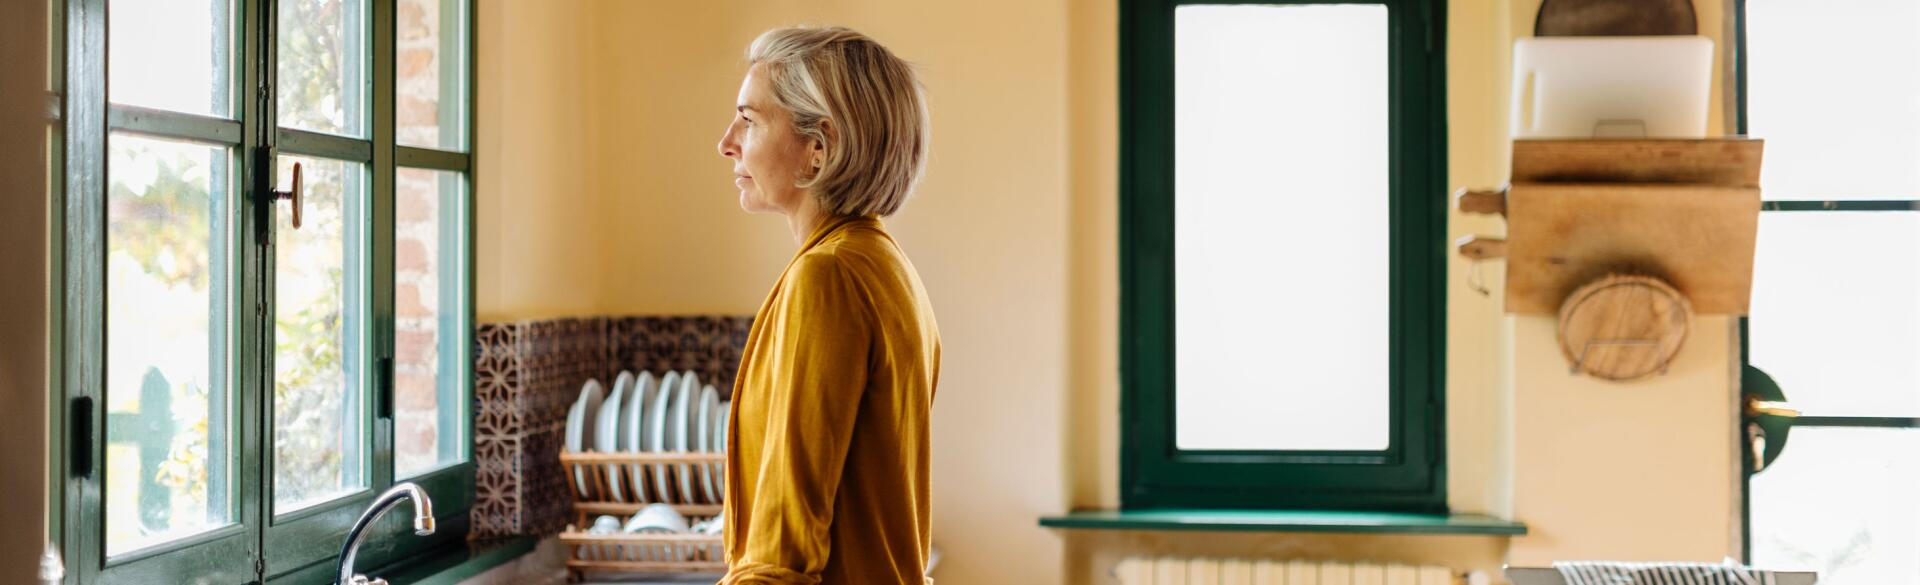 Woman standing in a kitchen at the sink looking out a window